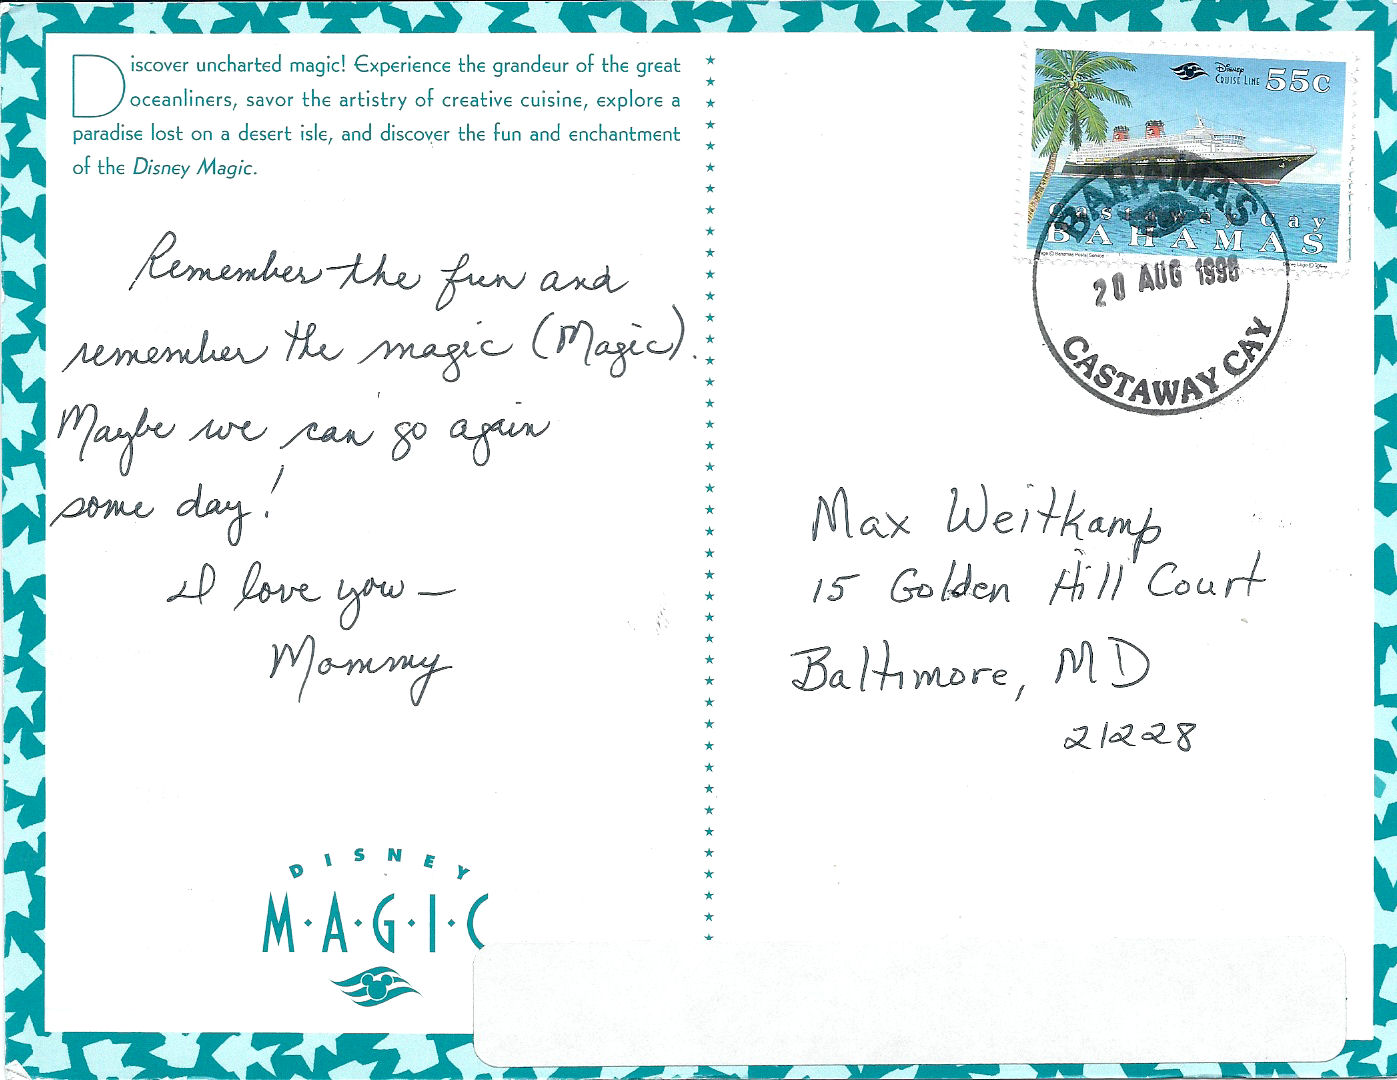 A letter my mom sent me from Castaway Cay, Disney's private Island.